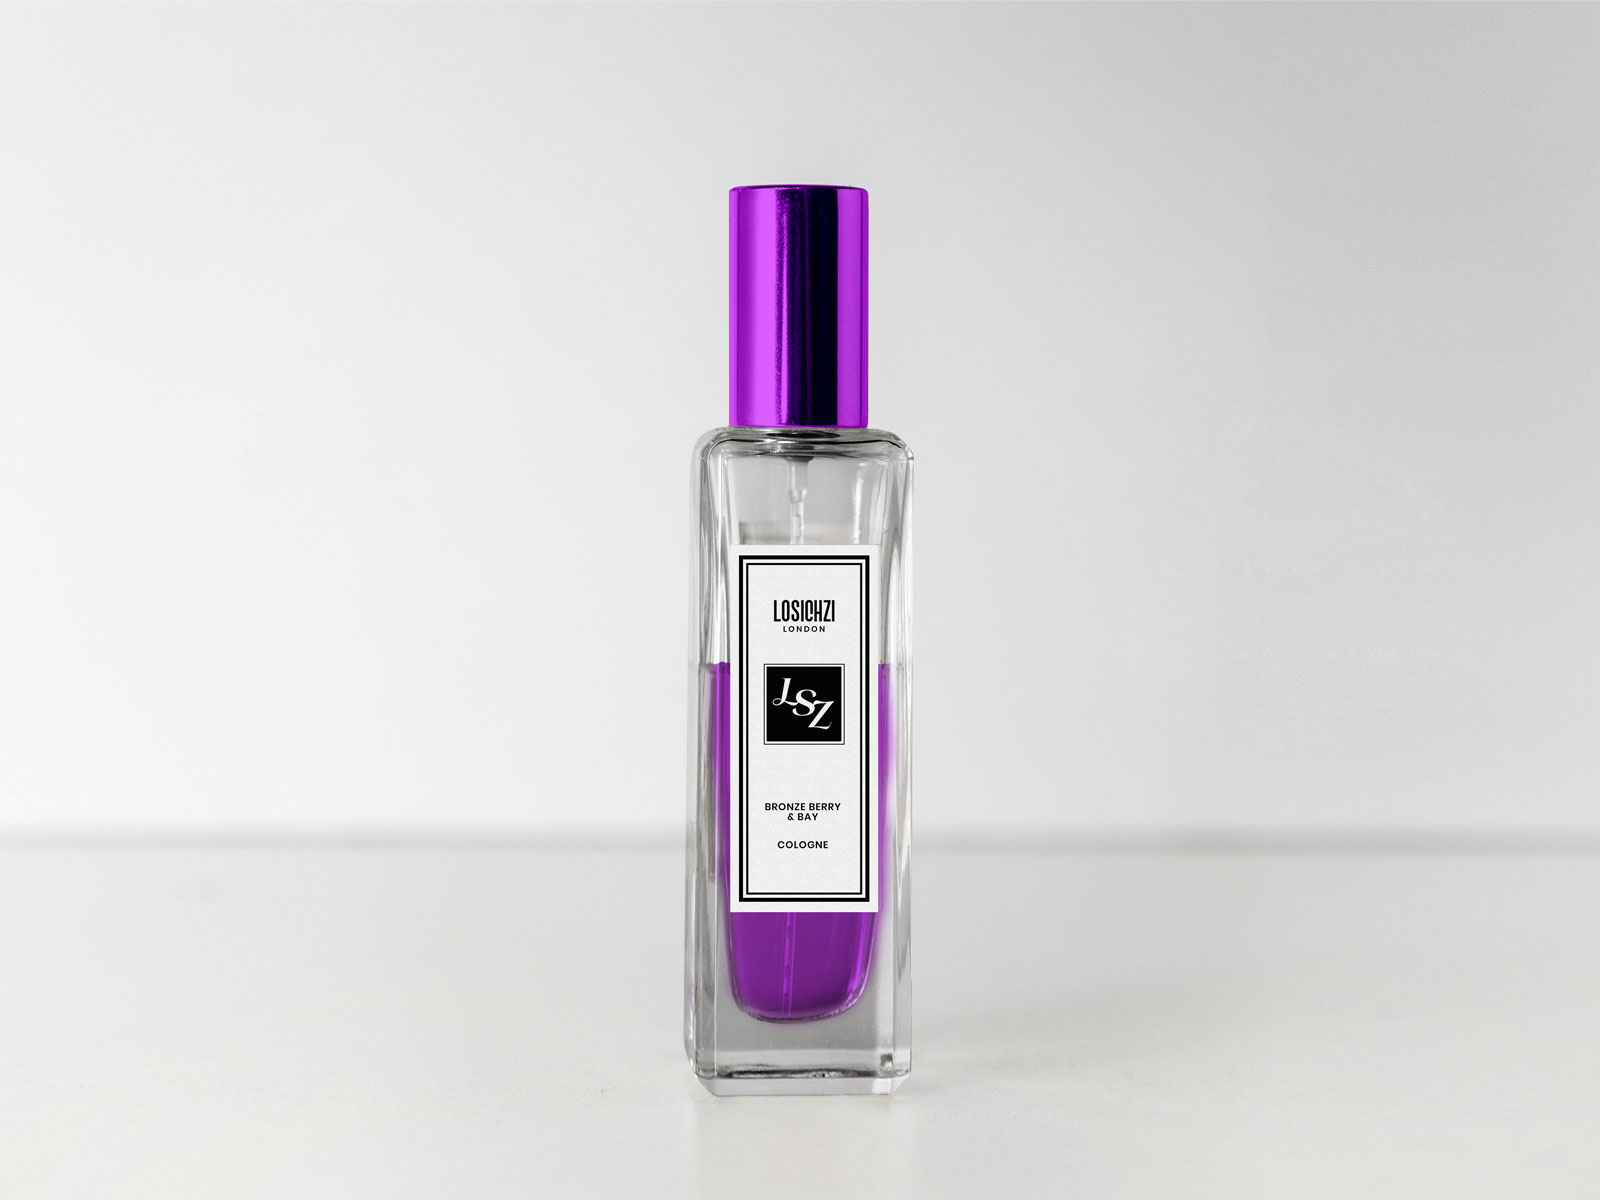 Free Cologne  Perfume  Scent Spray Bottle Mockup PSD